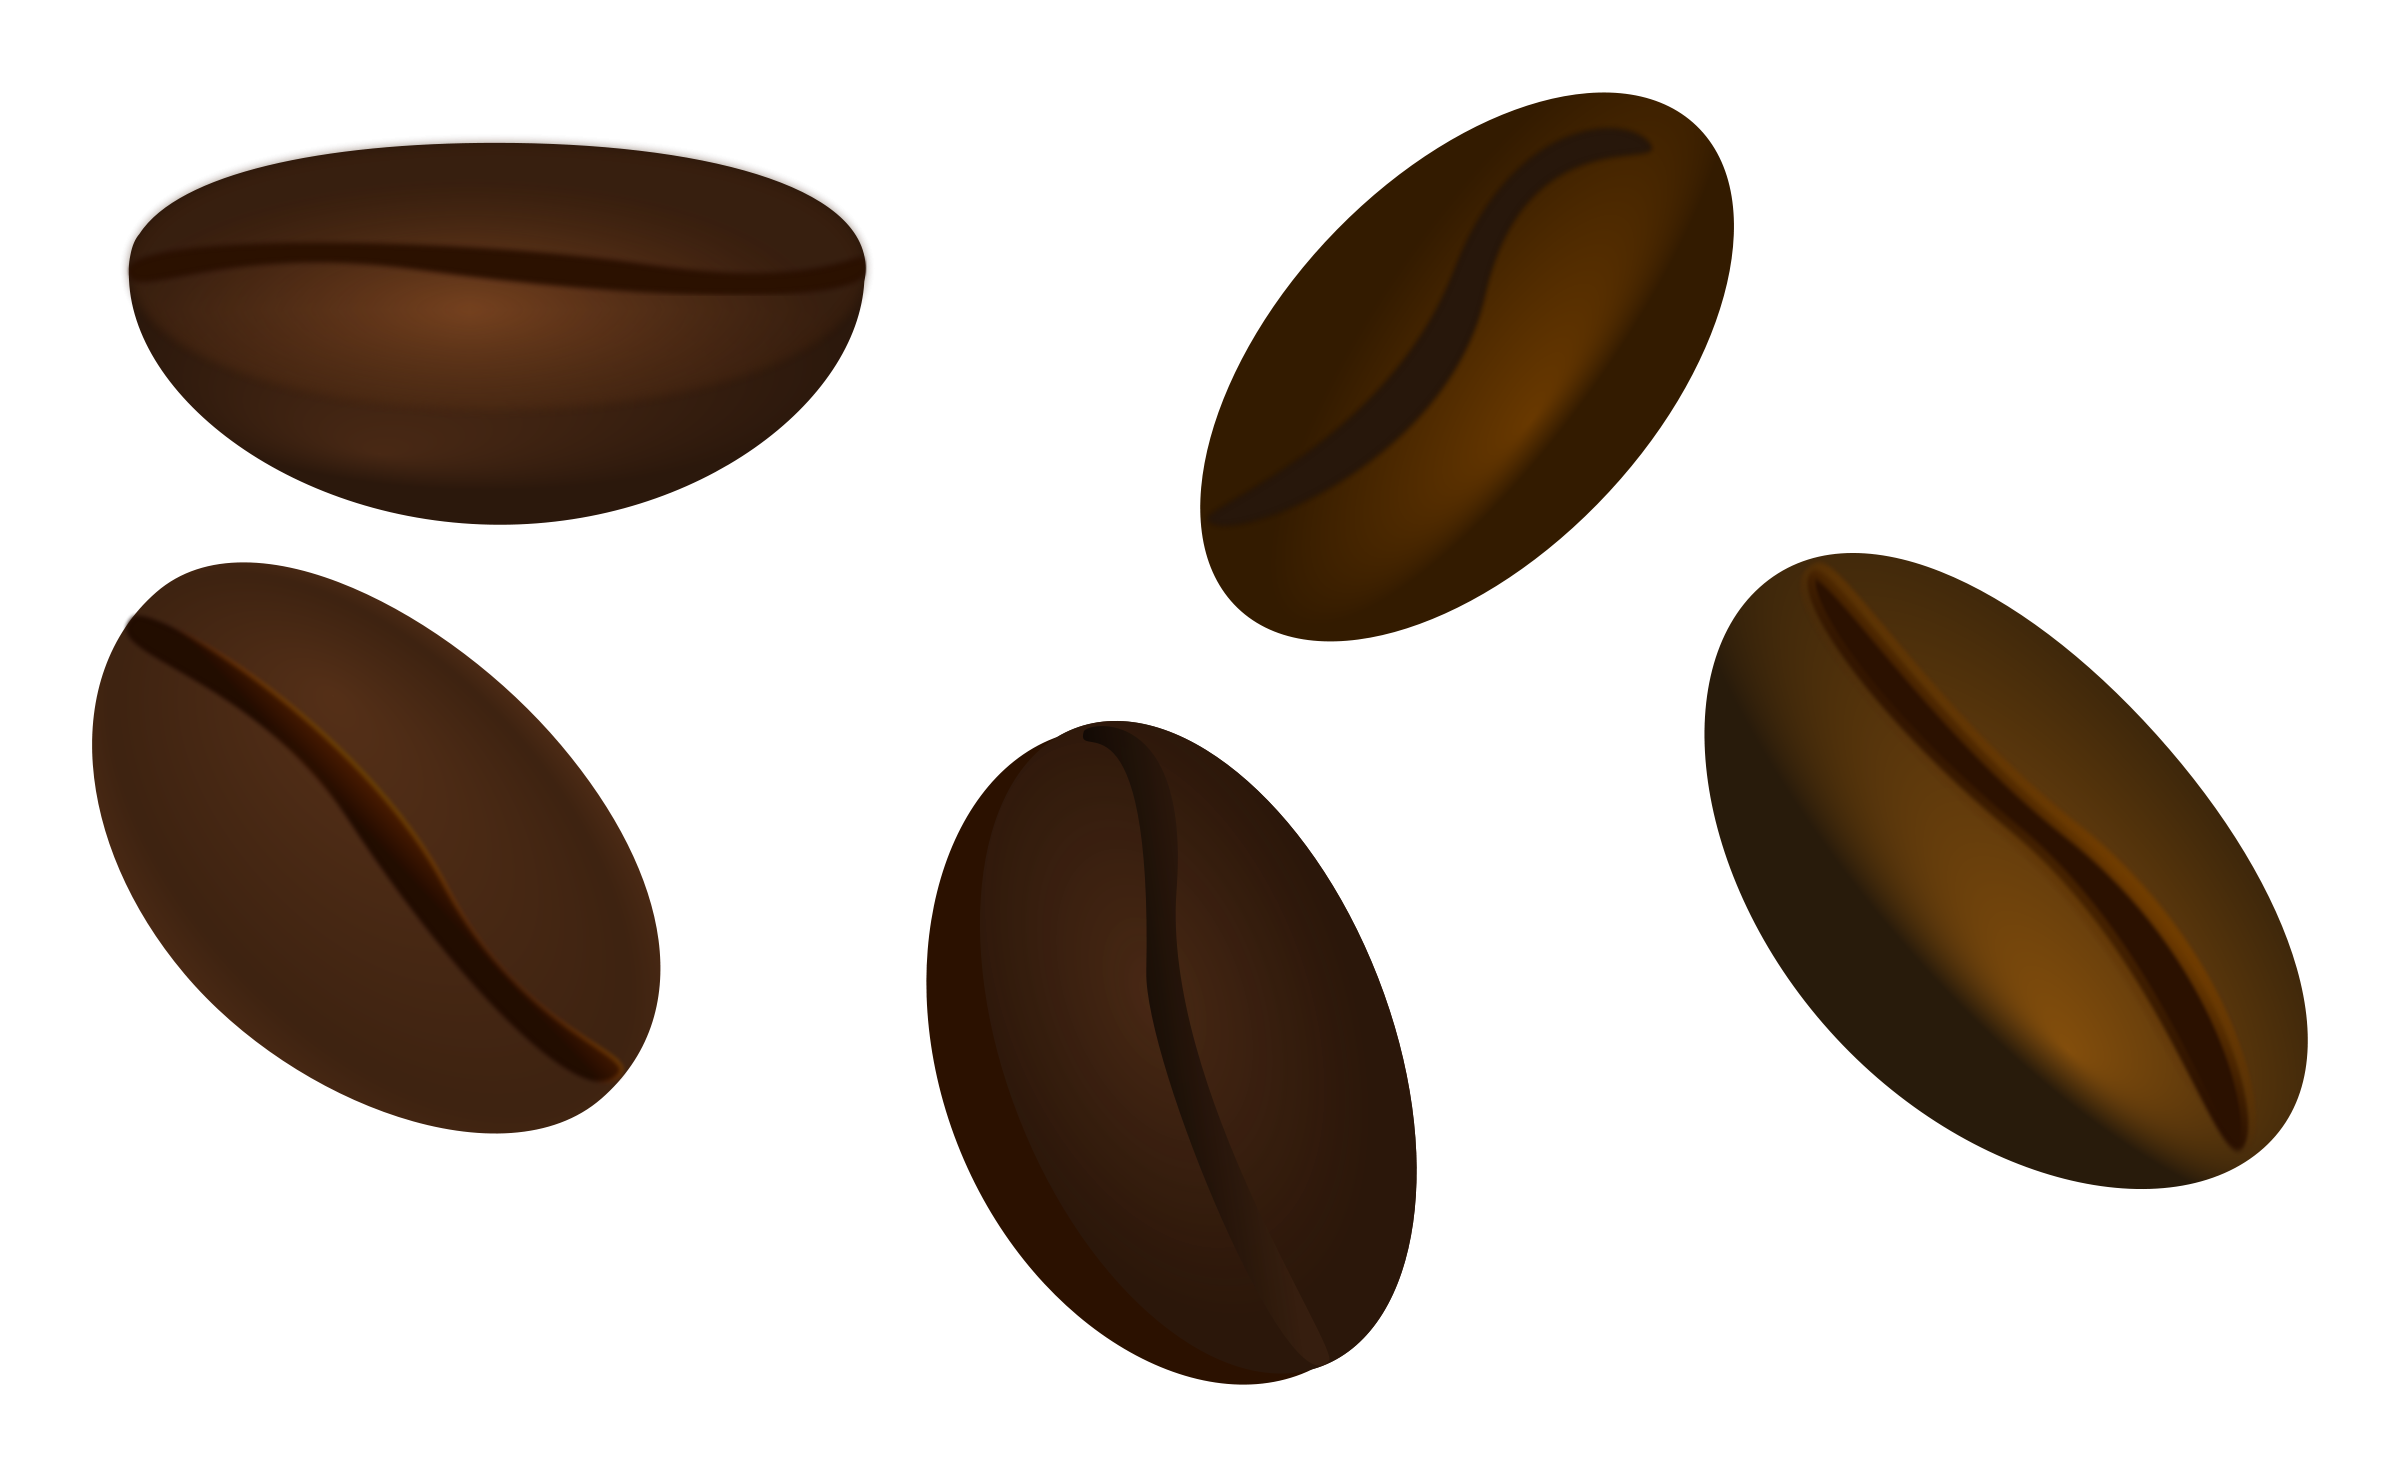 Black bean clipart transparent background vector freeuse Free Transparent Coffee Cliparts, Download Free Clip Art ... vector freeuse